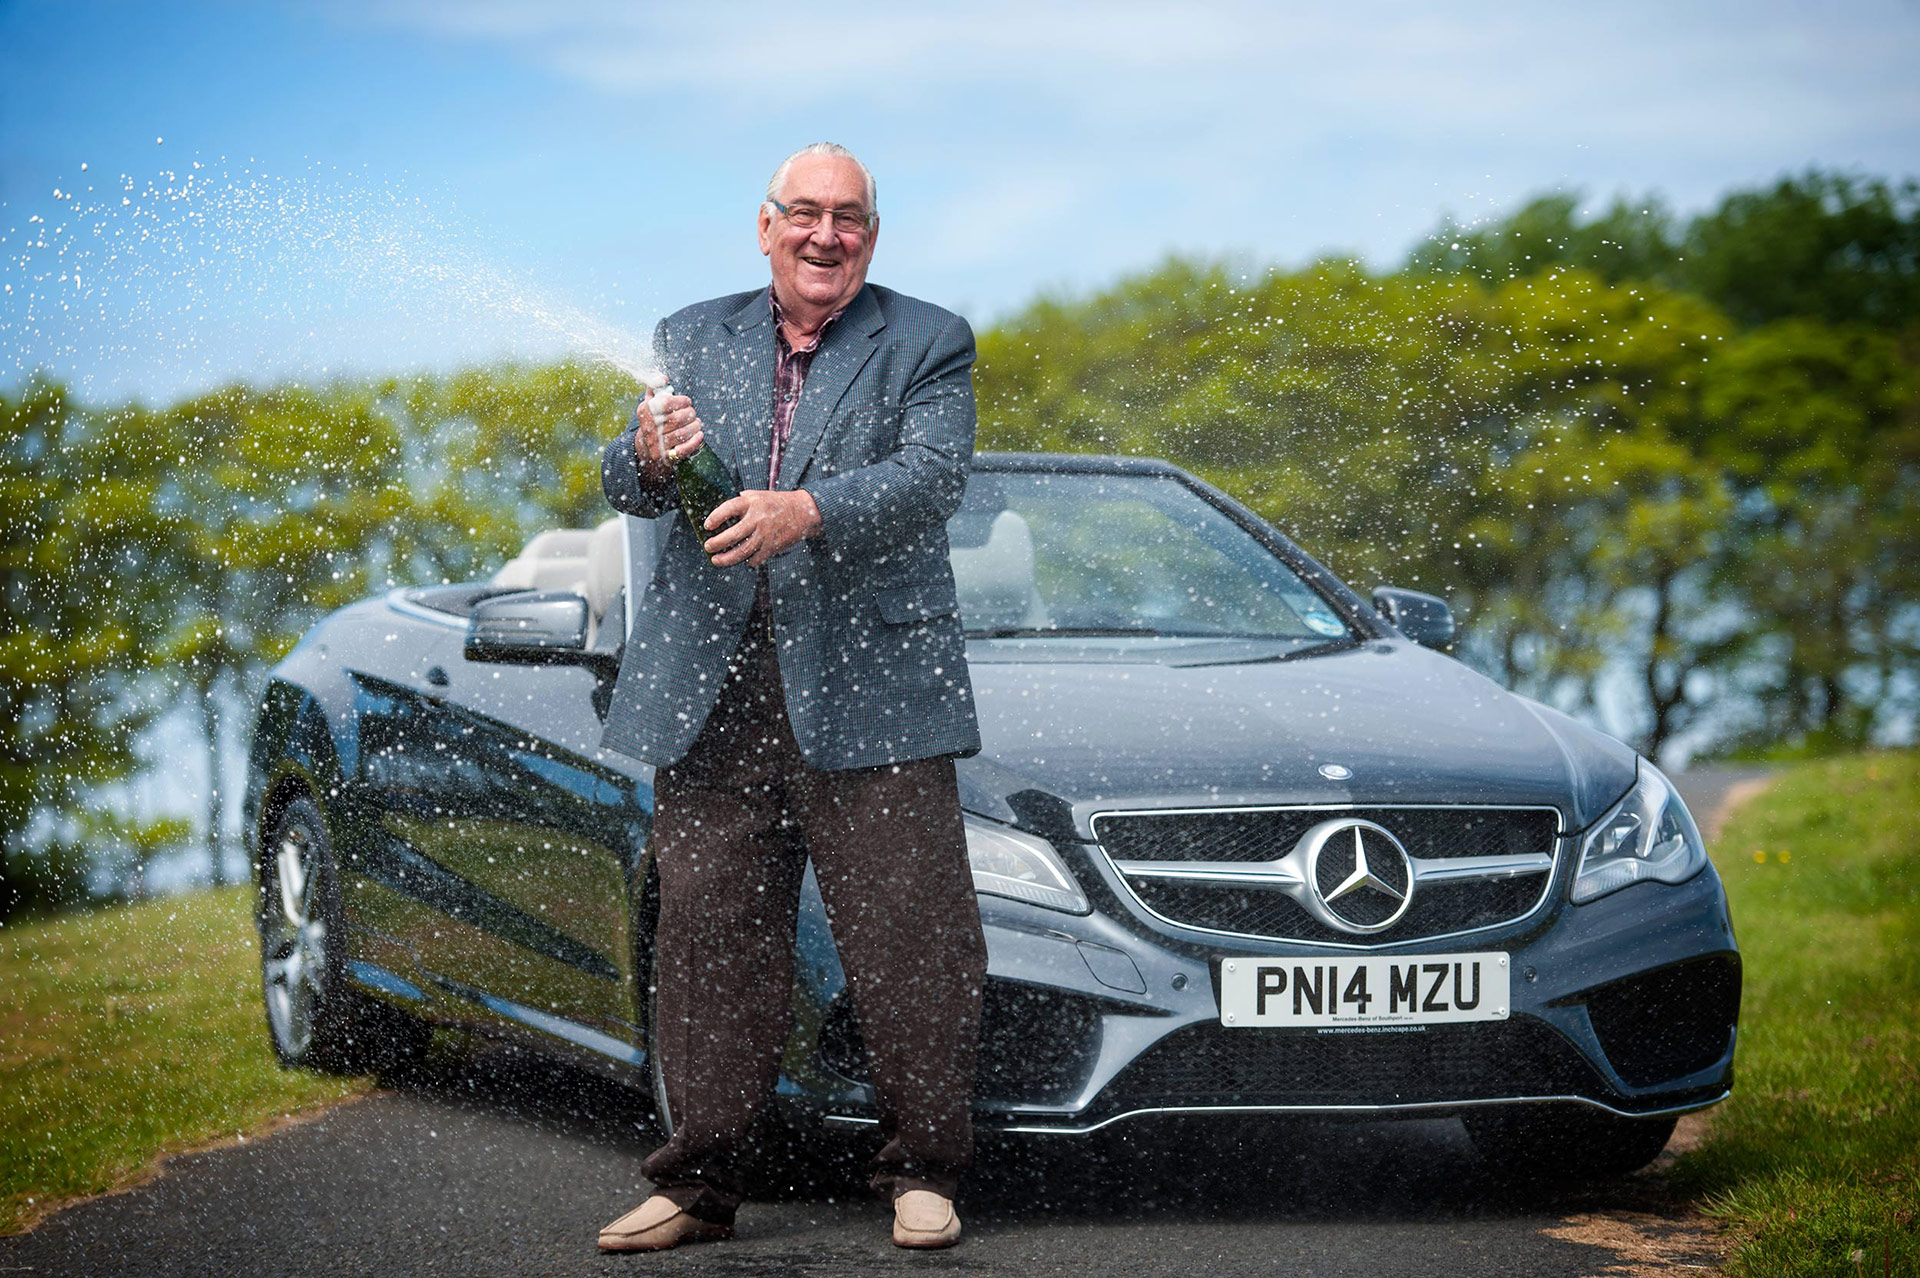 A man wins the Lotto and poses with his new car whilst celebrating with champagne.